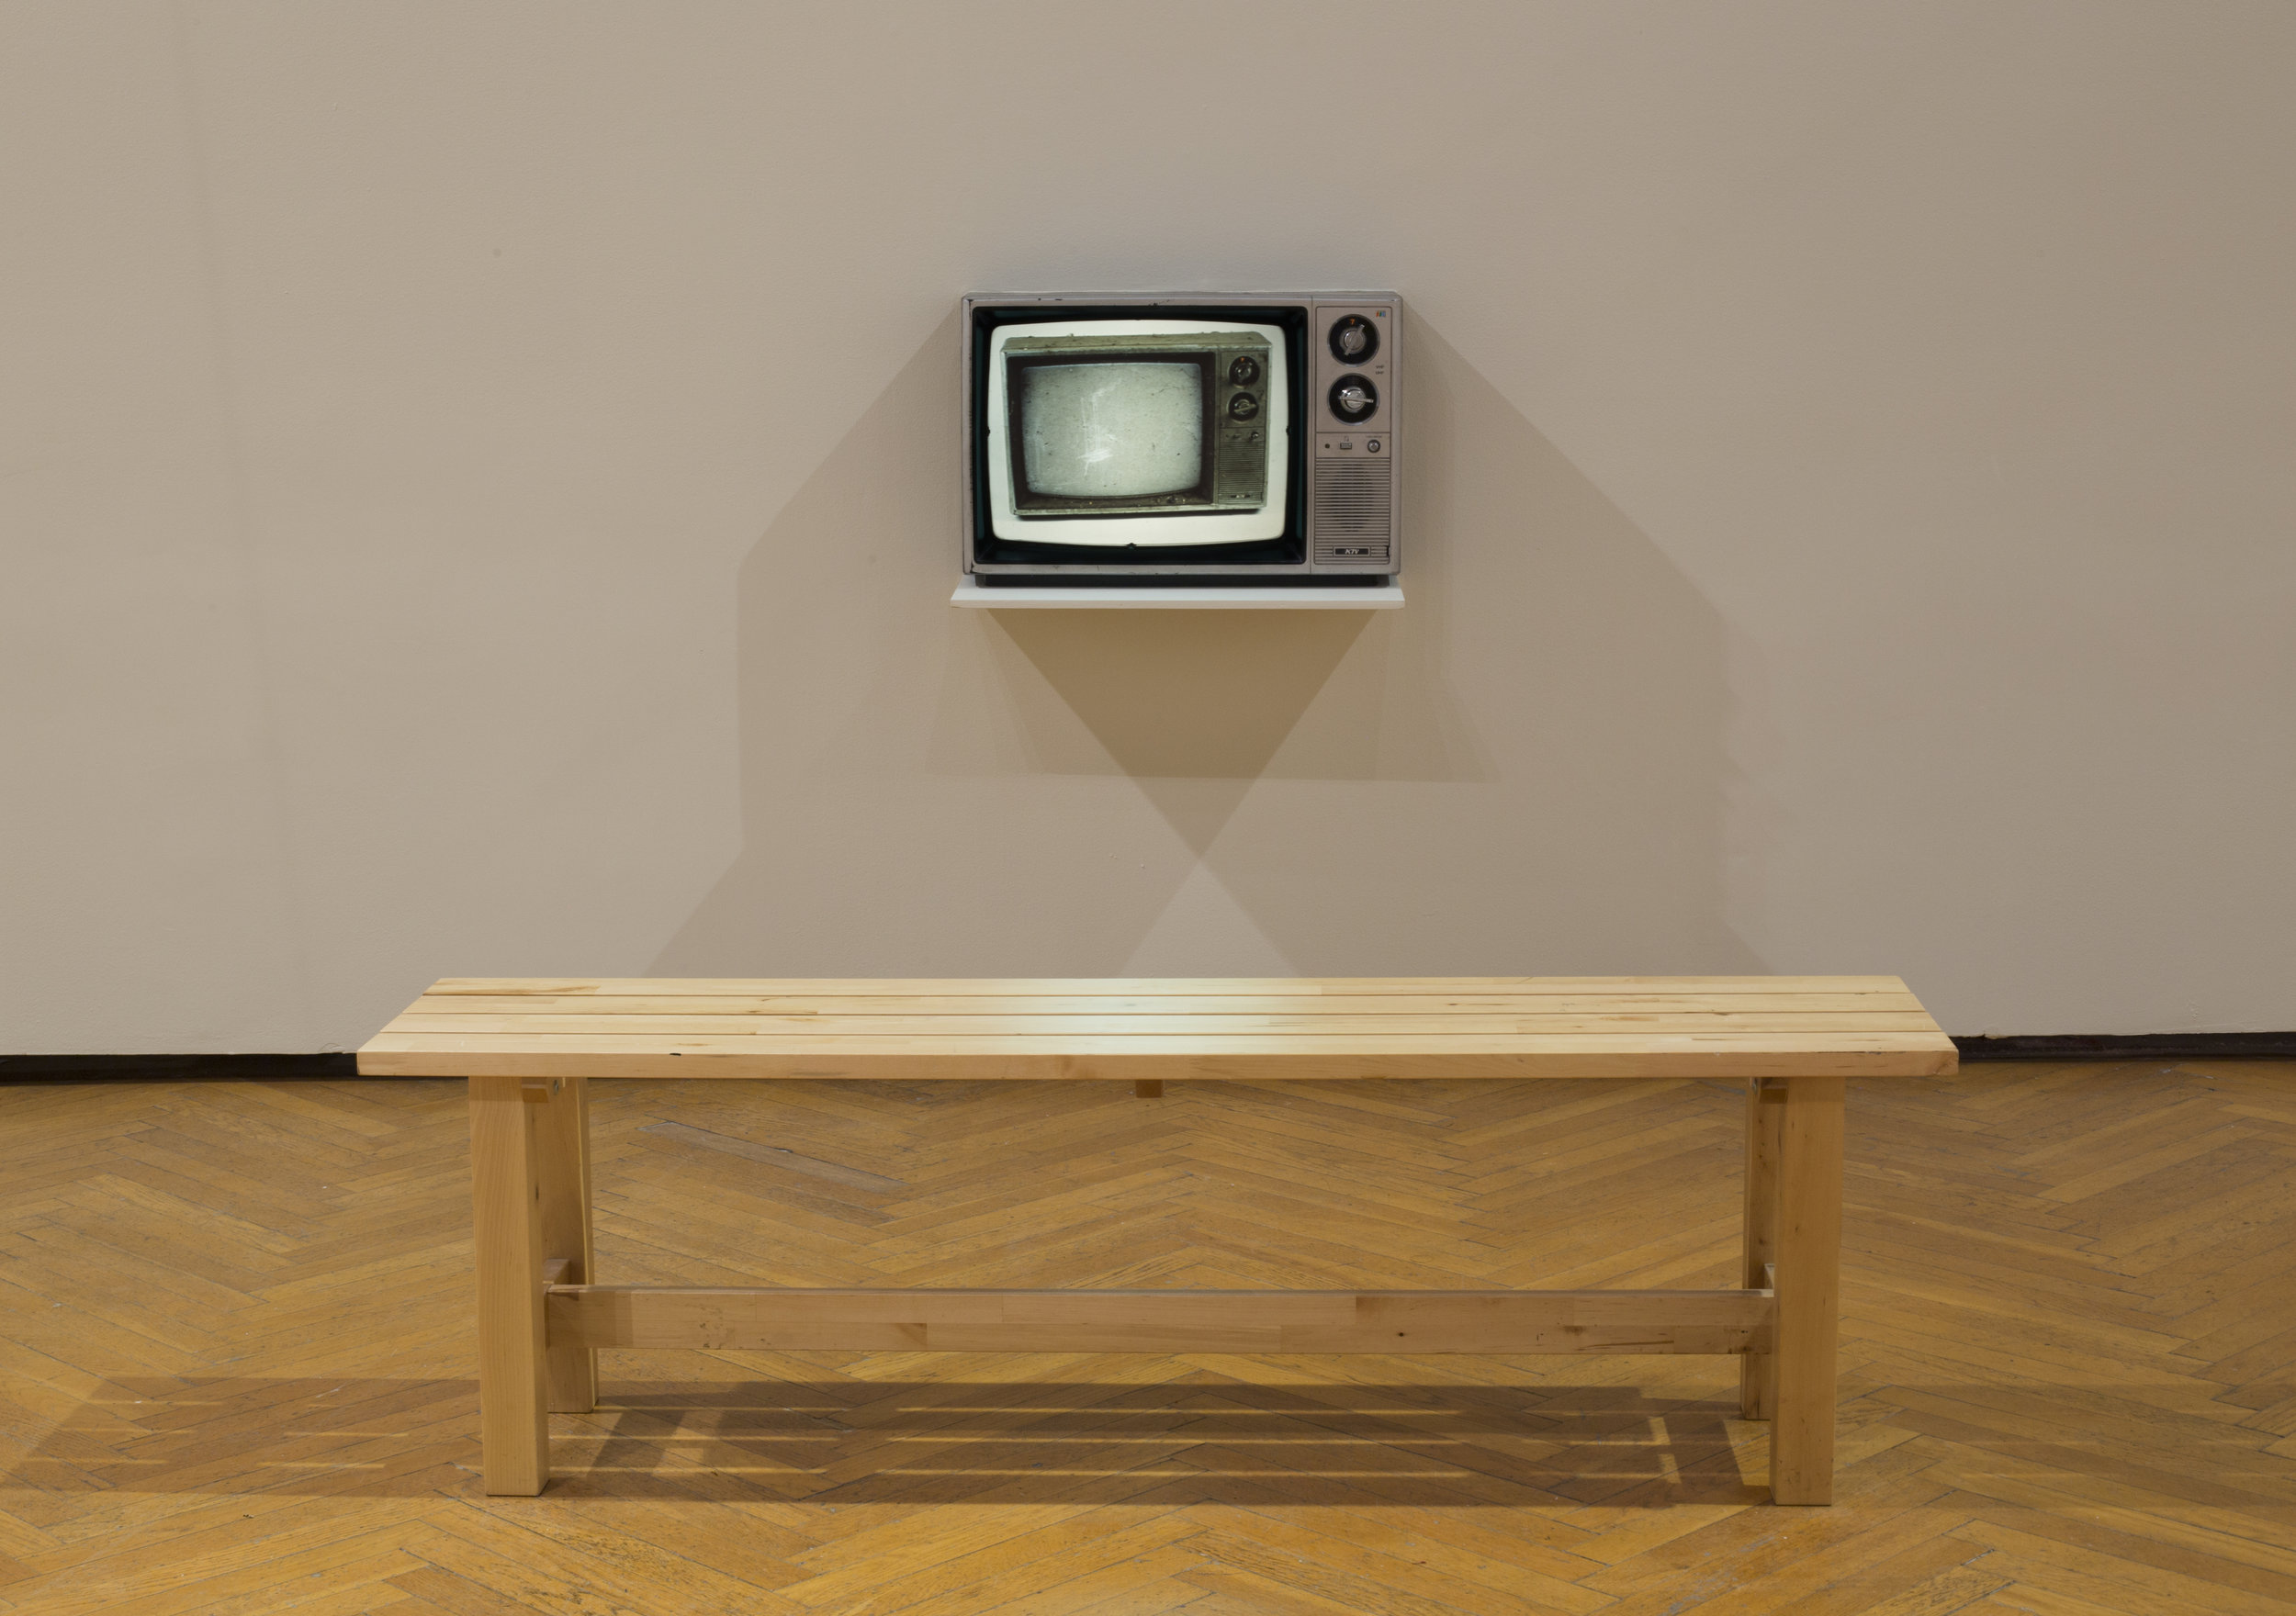 As Seen On TV, found TV slide projection installation, 2018